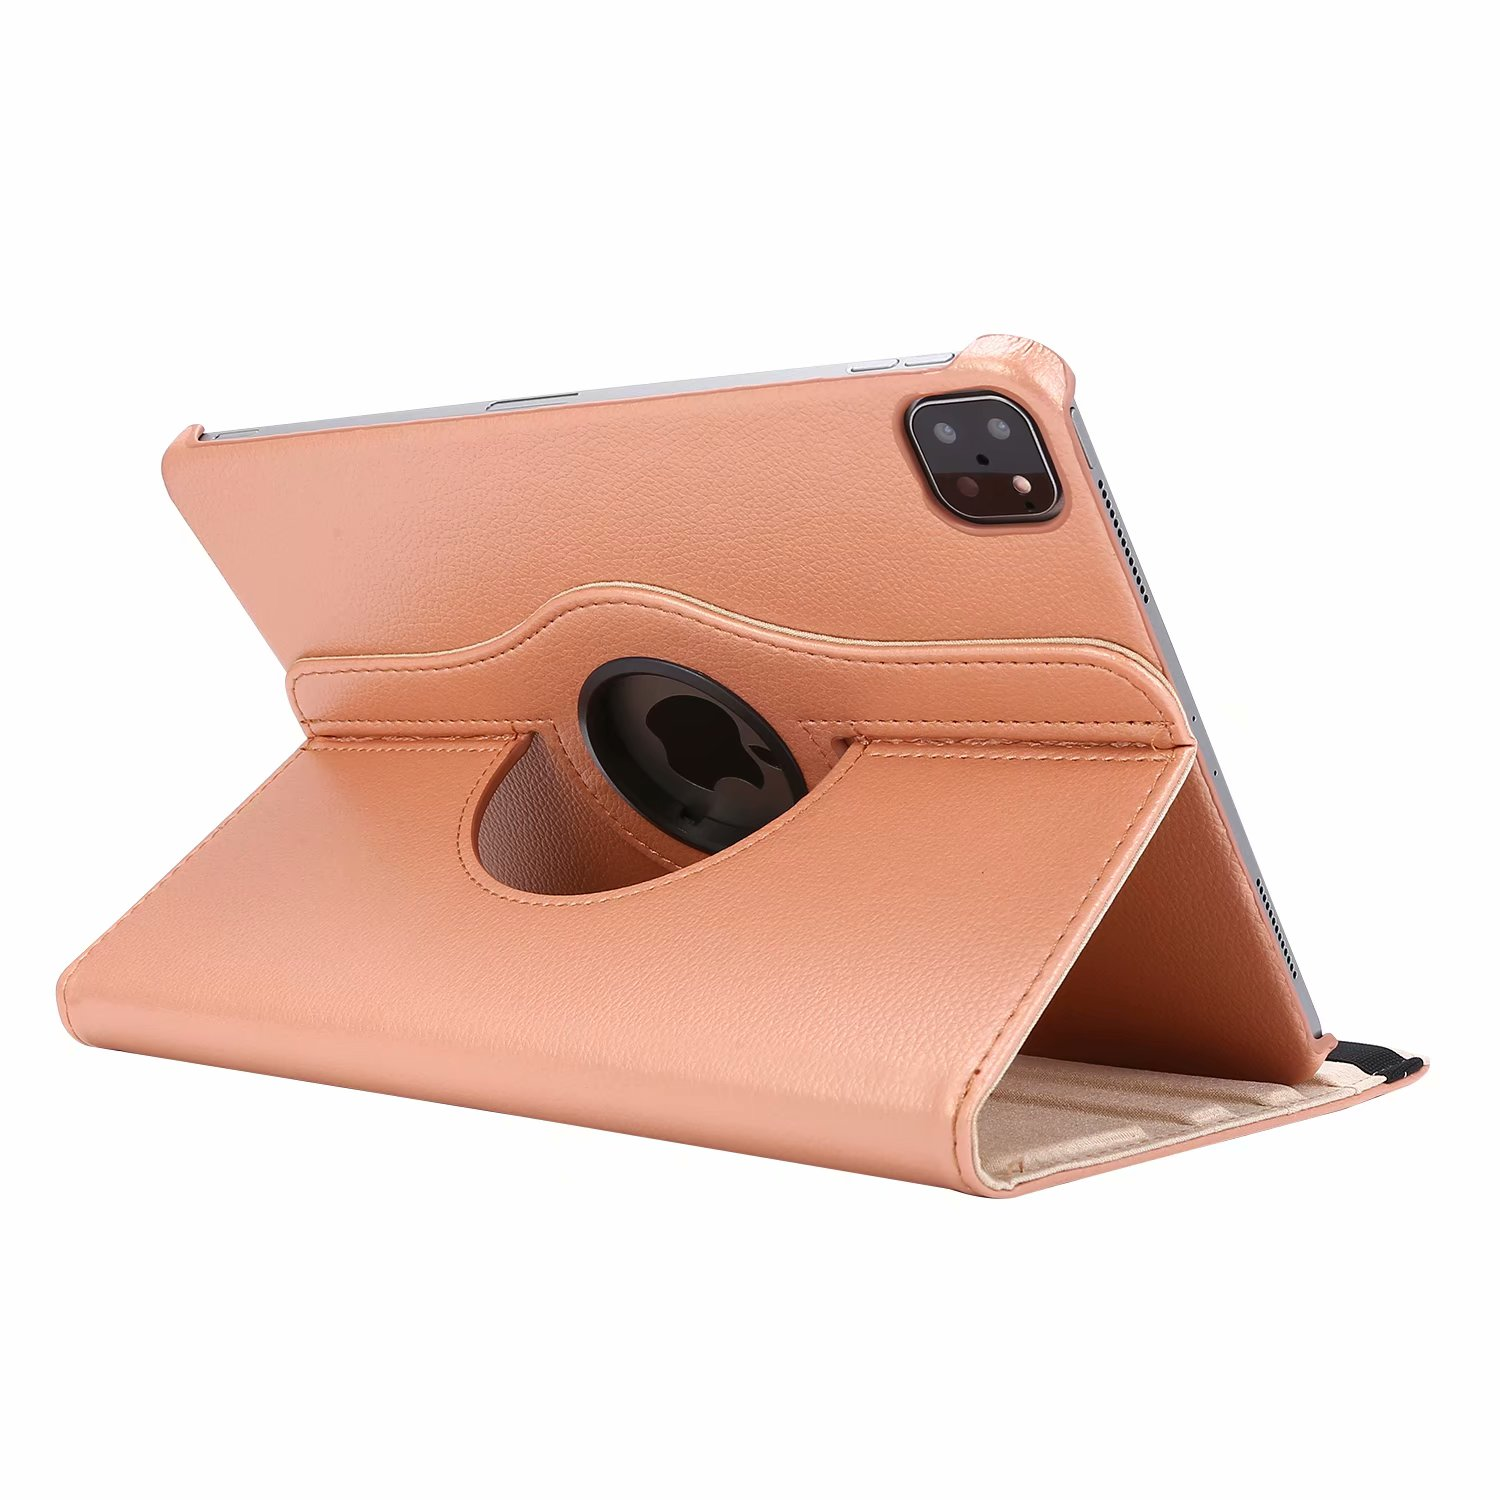 360 A2228 11 A1980 Degree Cover A2013 2021/2020/2018 Pro A2230 iPad Case A2068 A1934 for